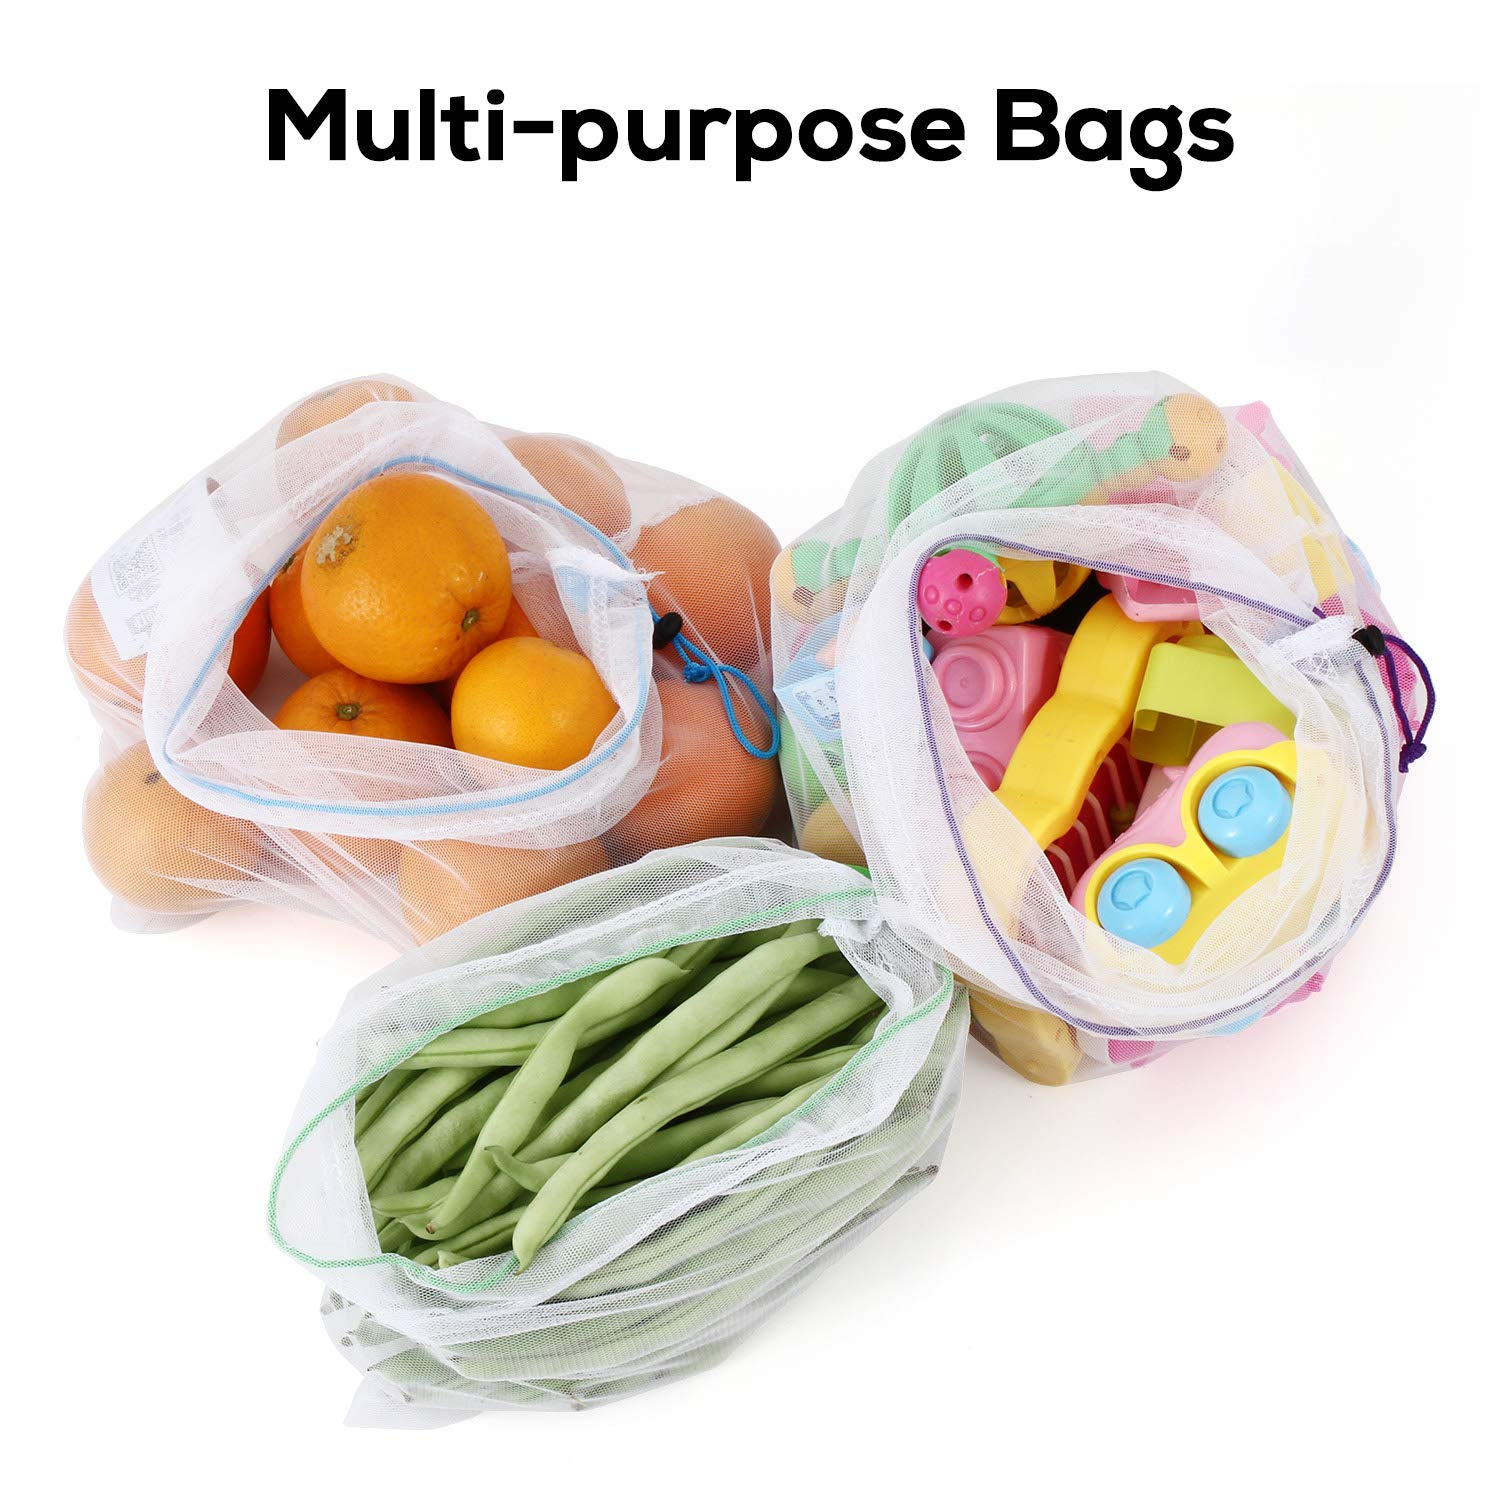 SPLF 12 Pcs Heavy Duty Reusable Mesh Produce Bags, Barcode Scanable See Through Food Safe Mesh Bags with Drawstring for Fruits, Vegetable, Food, Toys, Grocery Storage, Large Medium Small by SPLF (Image #5)